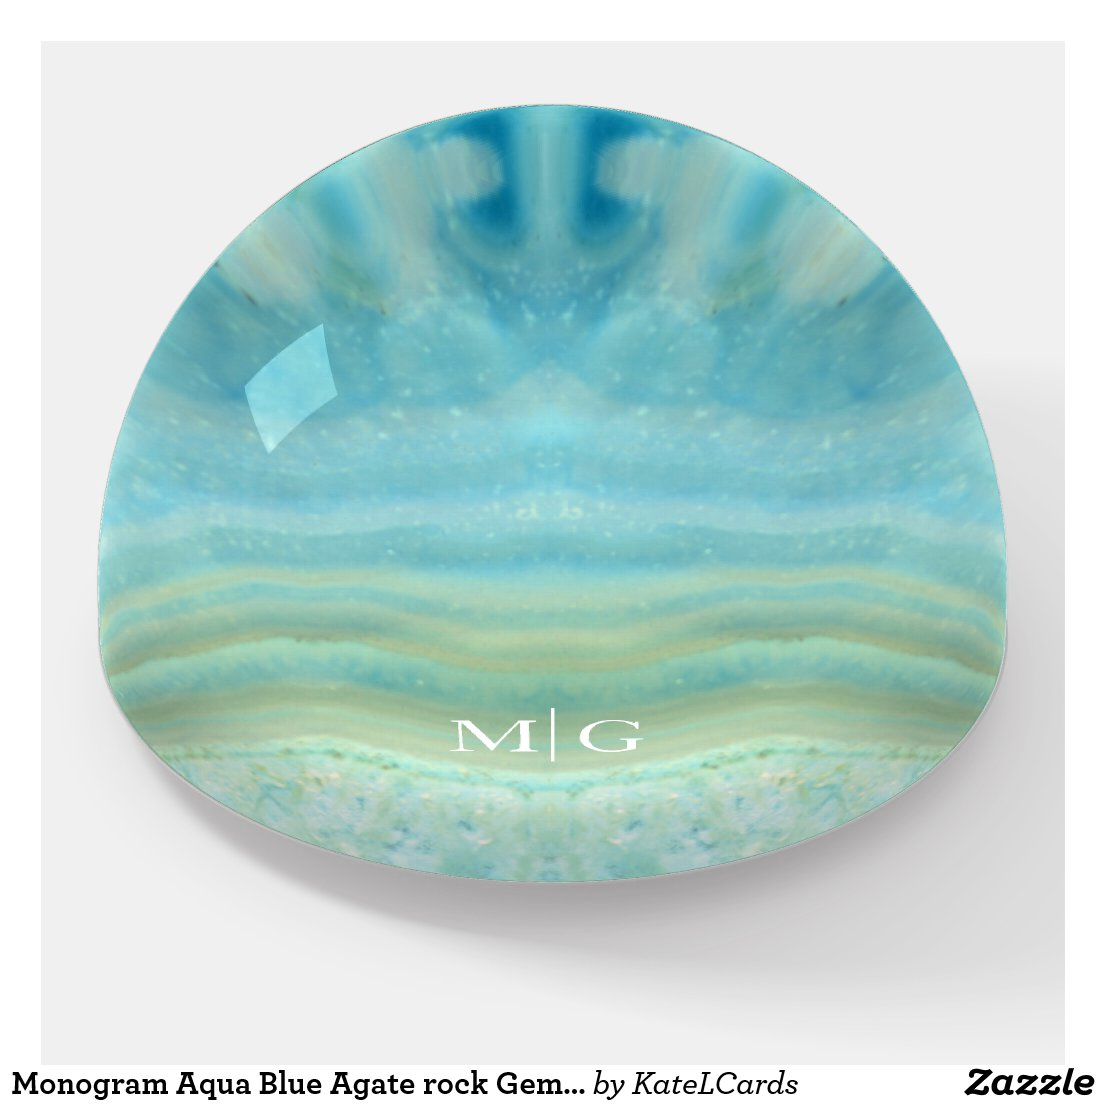 Monogram Aqua Blue Agate rock Gem Stone Pattern Paperweight